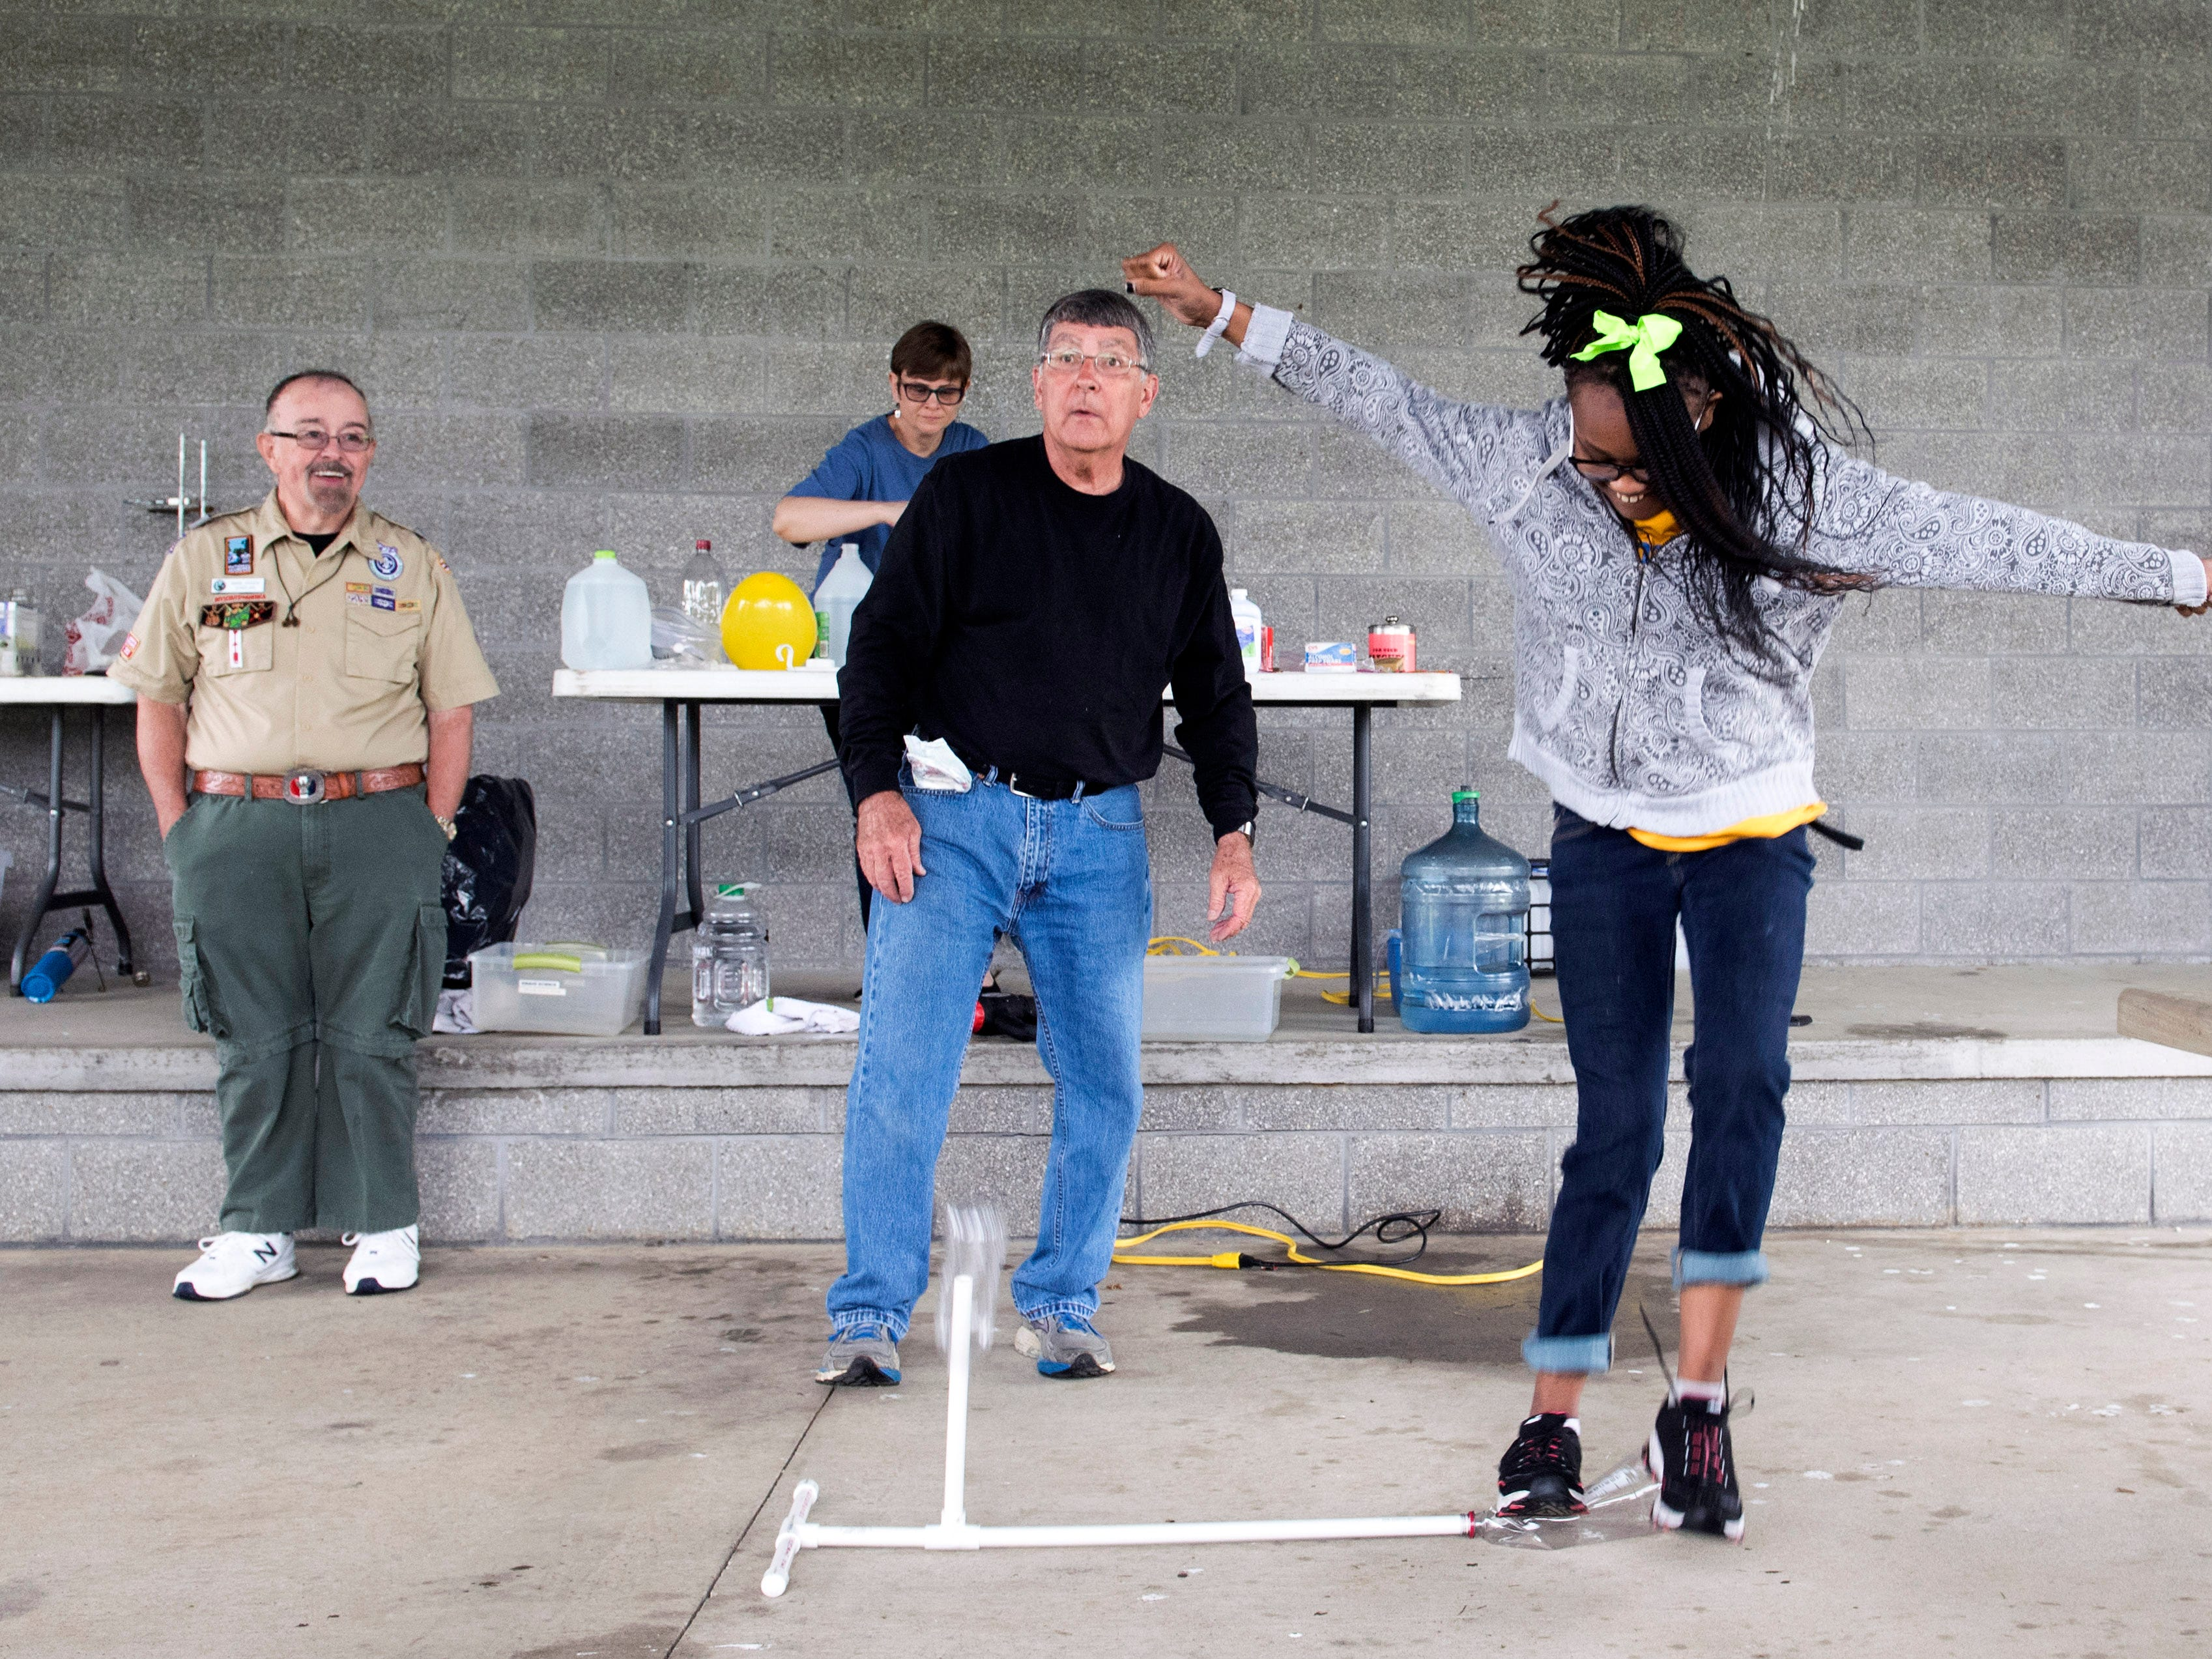 Thompkins Elementary seventh-grader Octaiva Mason, right, stomps on a POP! Rocket to launch a plastic battle in the air as Boy Scouts of America Chaplin Mark Dicken, left, and Evansville Museum's Jim Price teach science lessons during the Buffalo Trace Council's Exceptional Needs Field Day at the Eykamp Scout Center, Thursday, April 25, 2019.